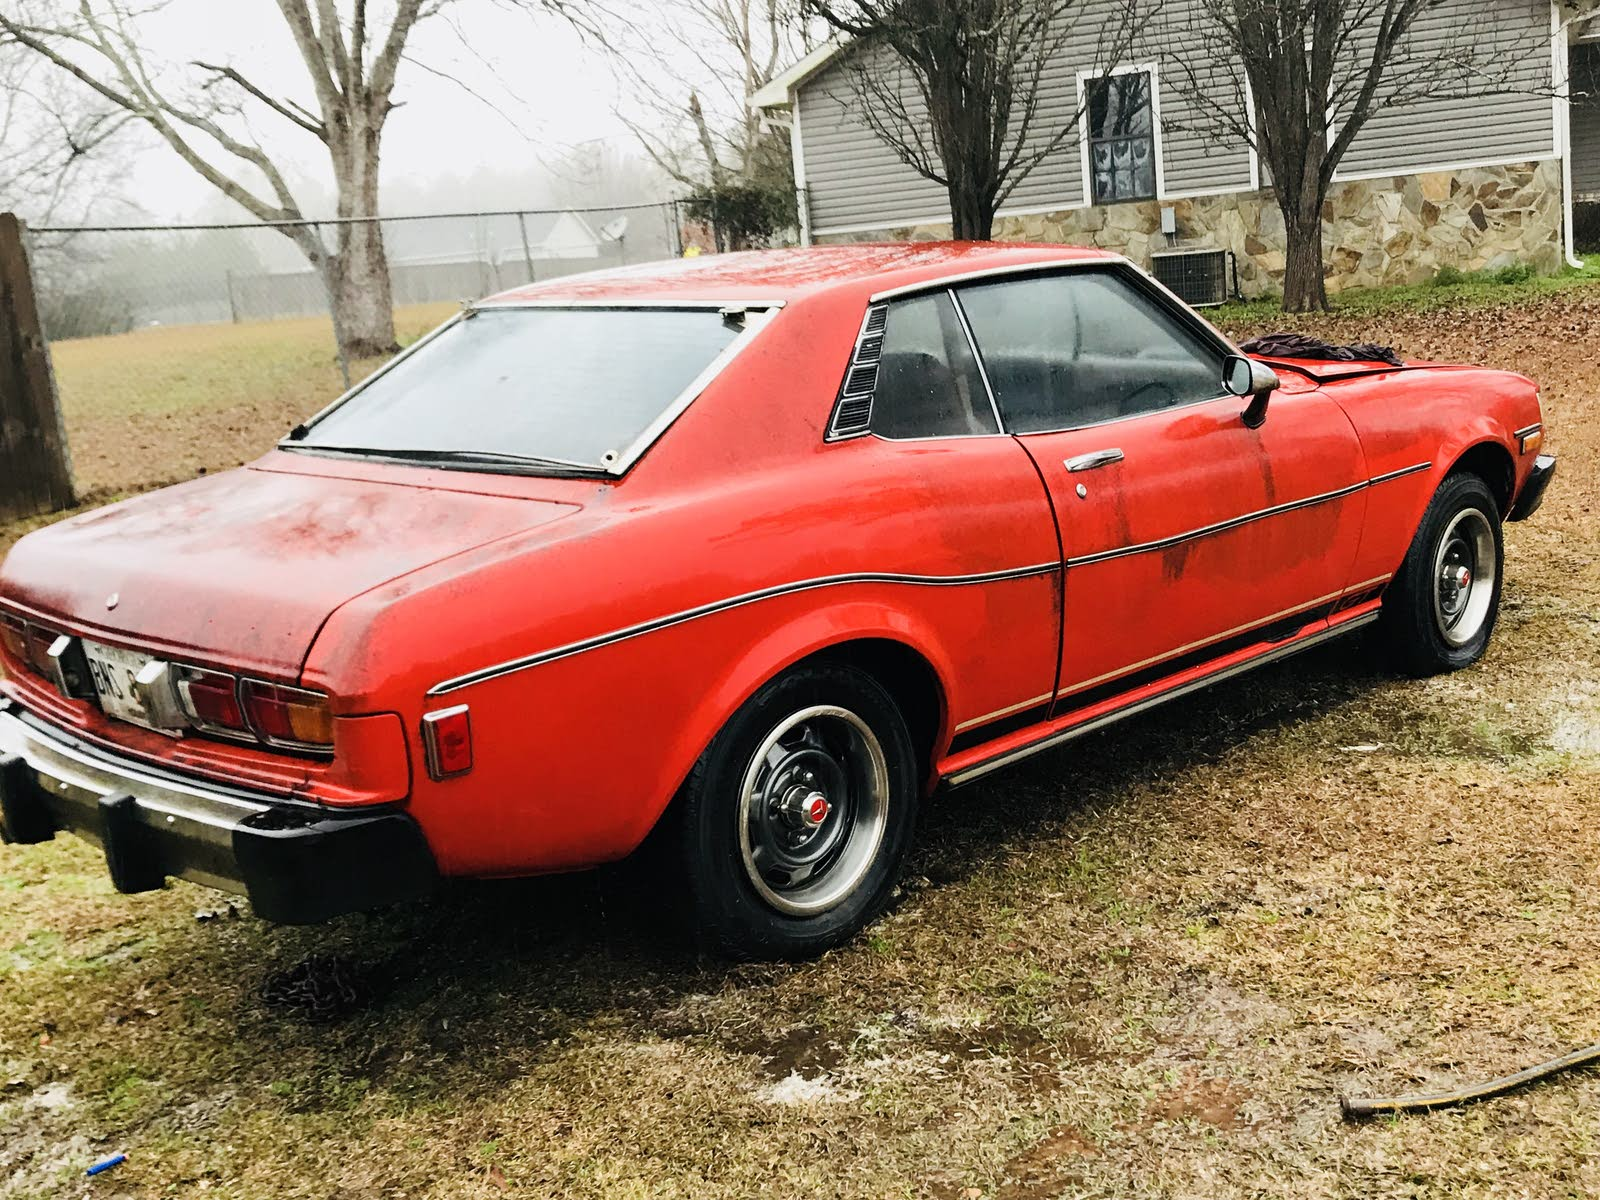 Toyota Celica Questions - where can i buy a 1977 toyota